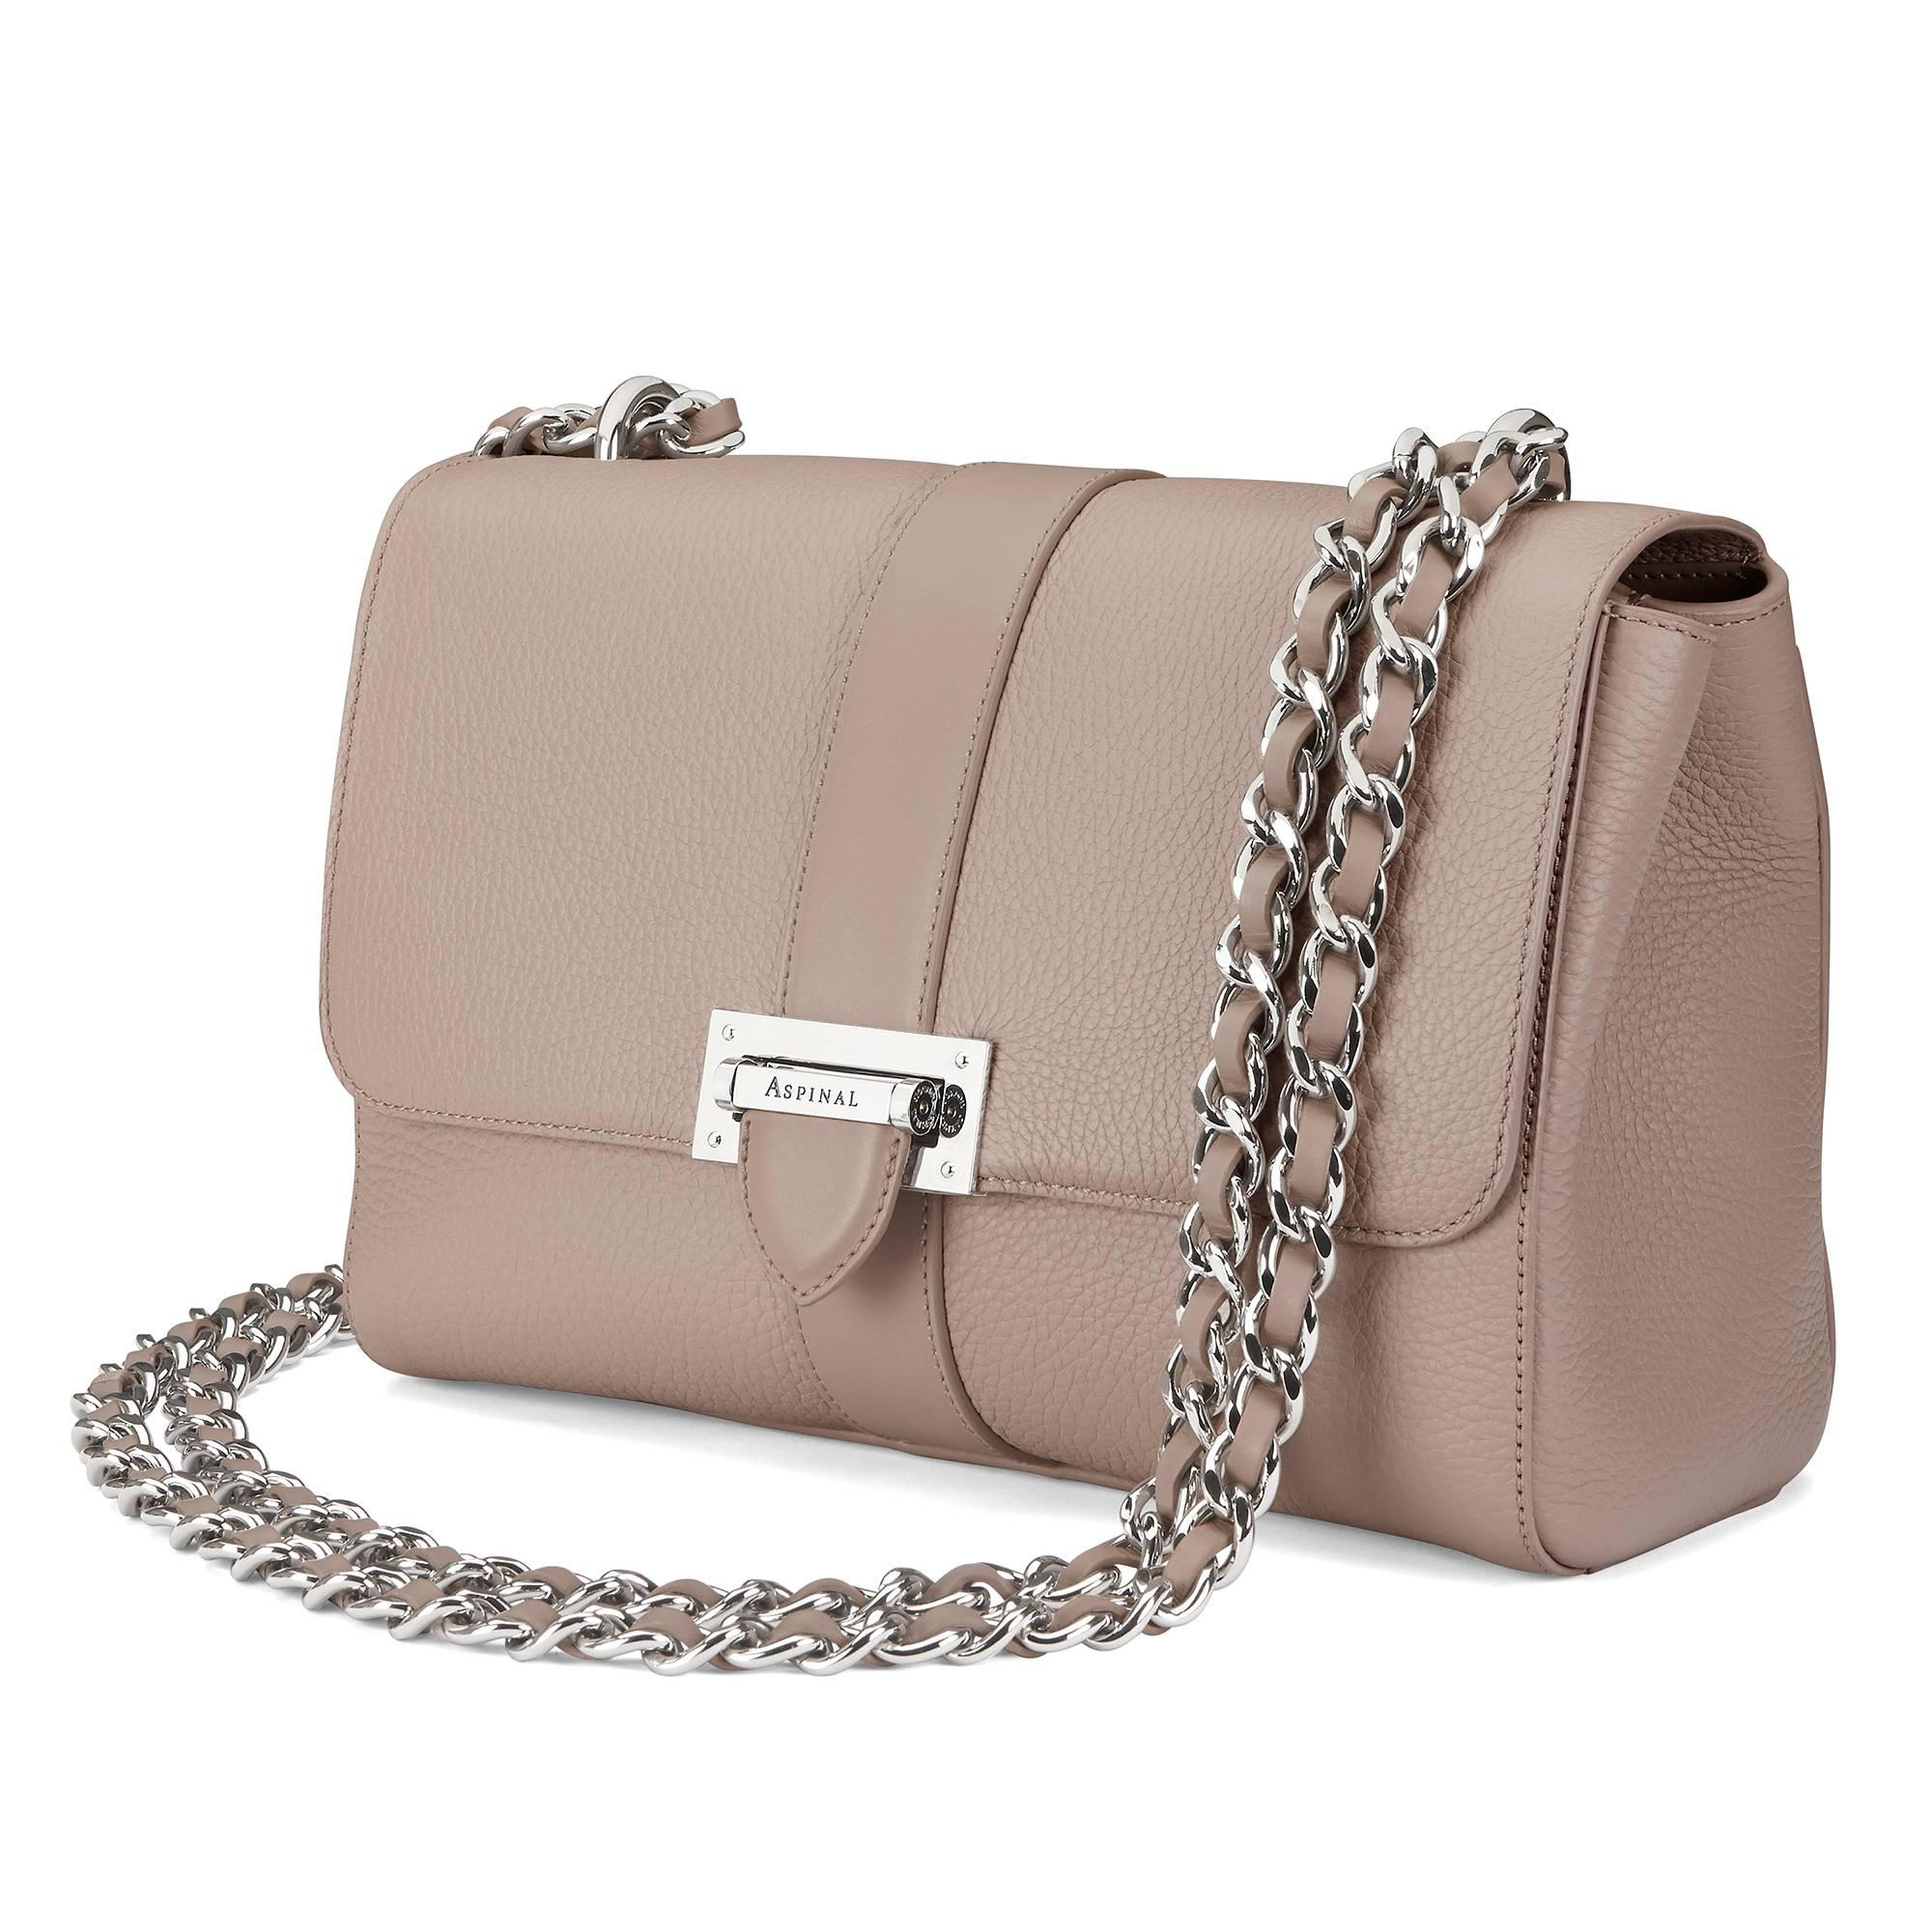 Aspinal - Brown Large Lottie Bag In Soft Taupe Pebble - Lyst. View  fullscreen 1191cf9fbf